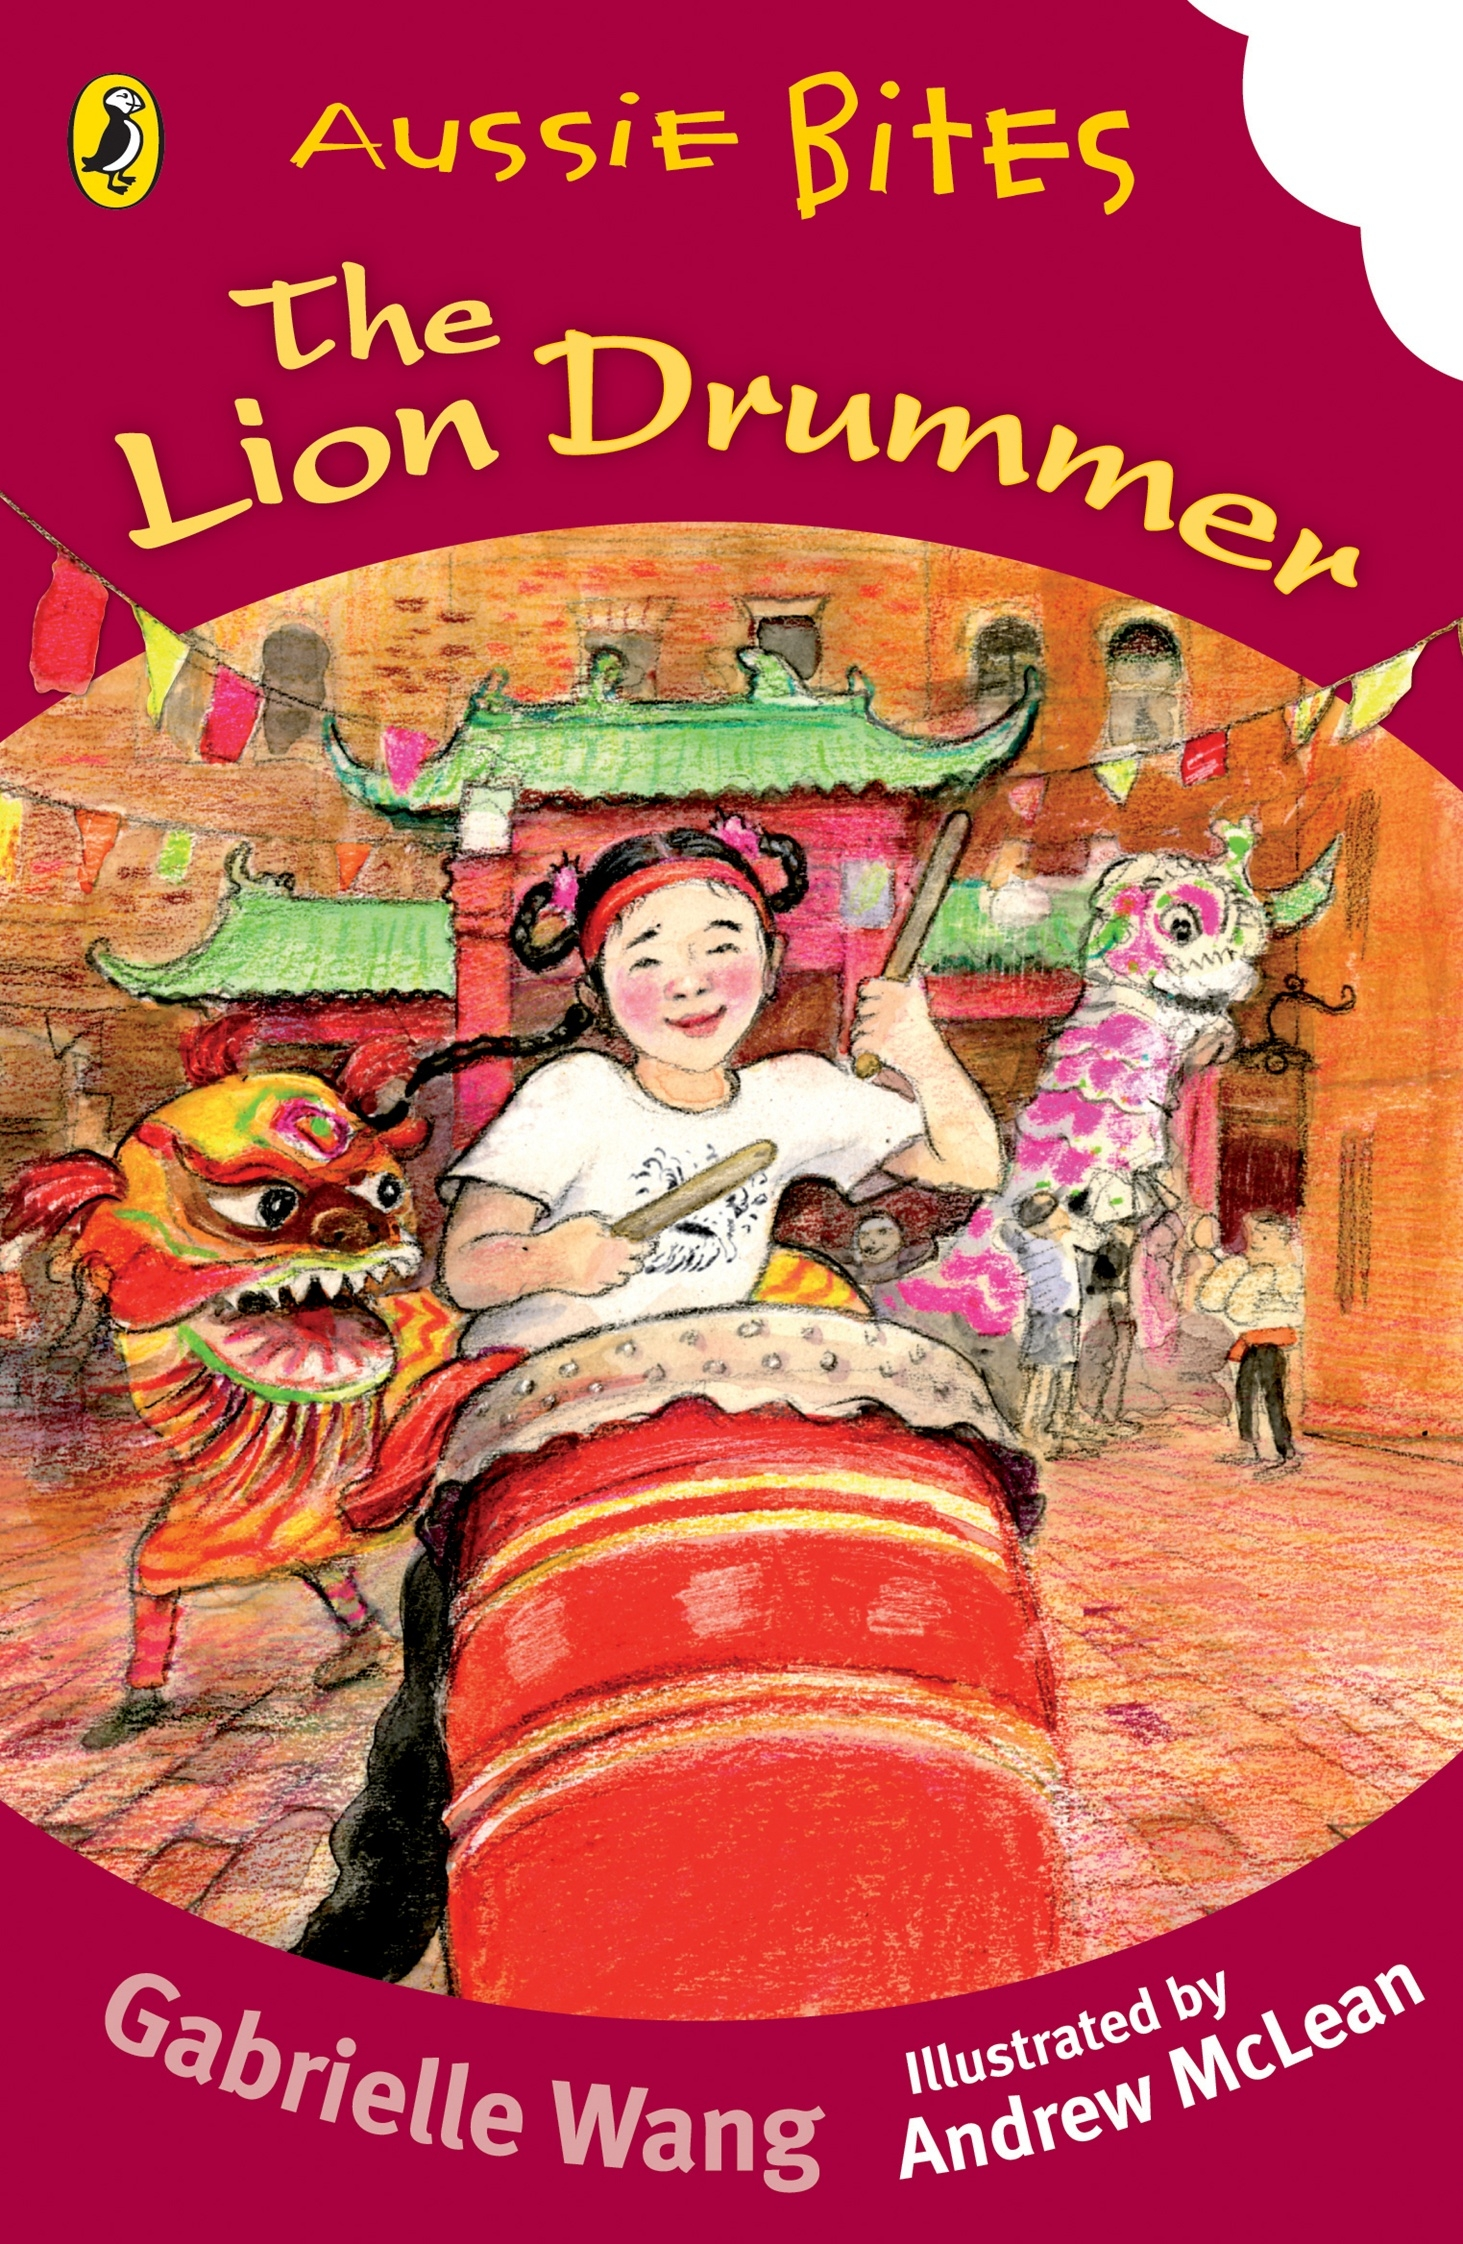 The Lion Drummer